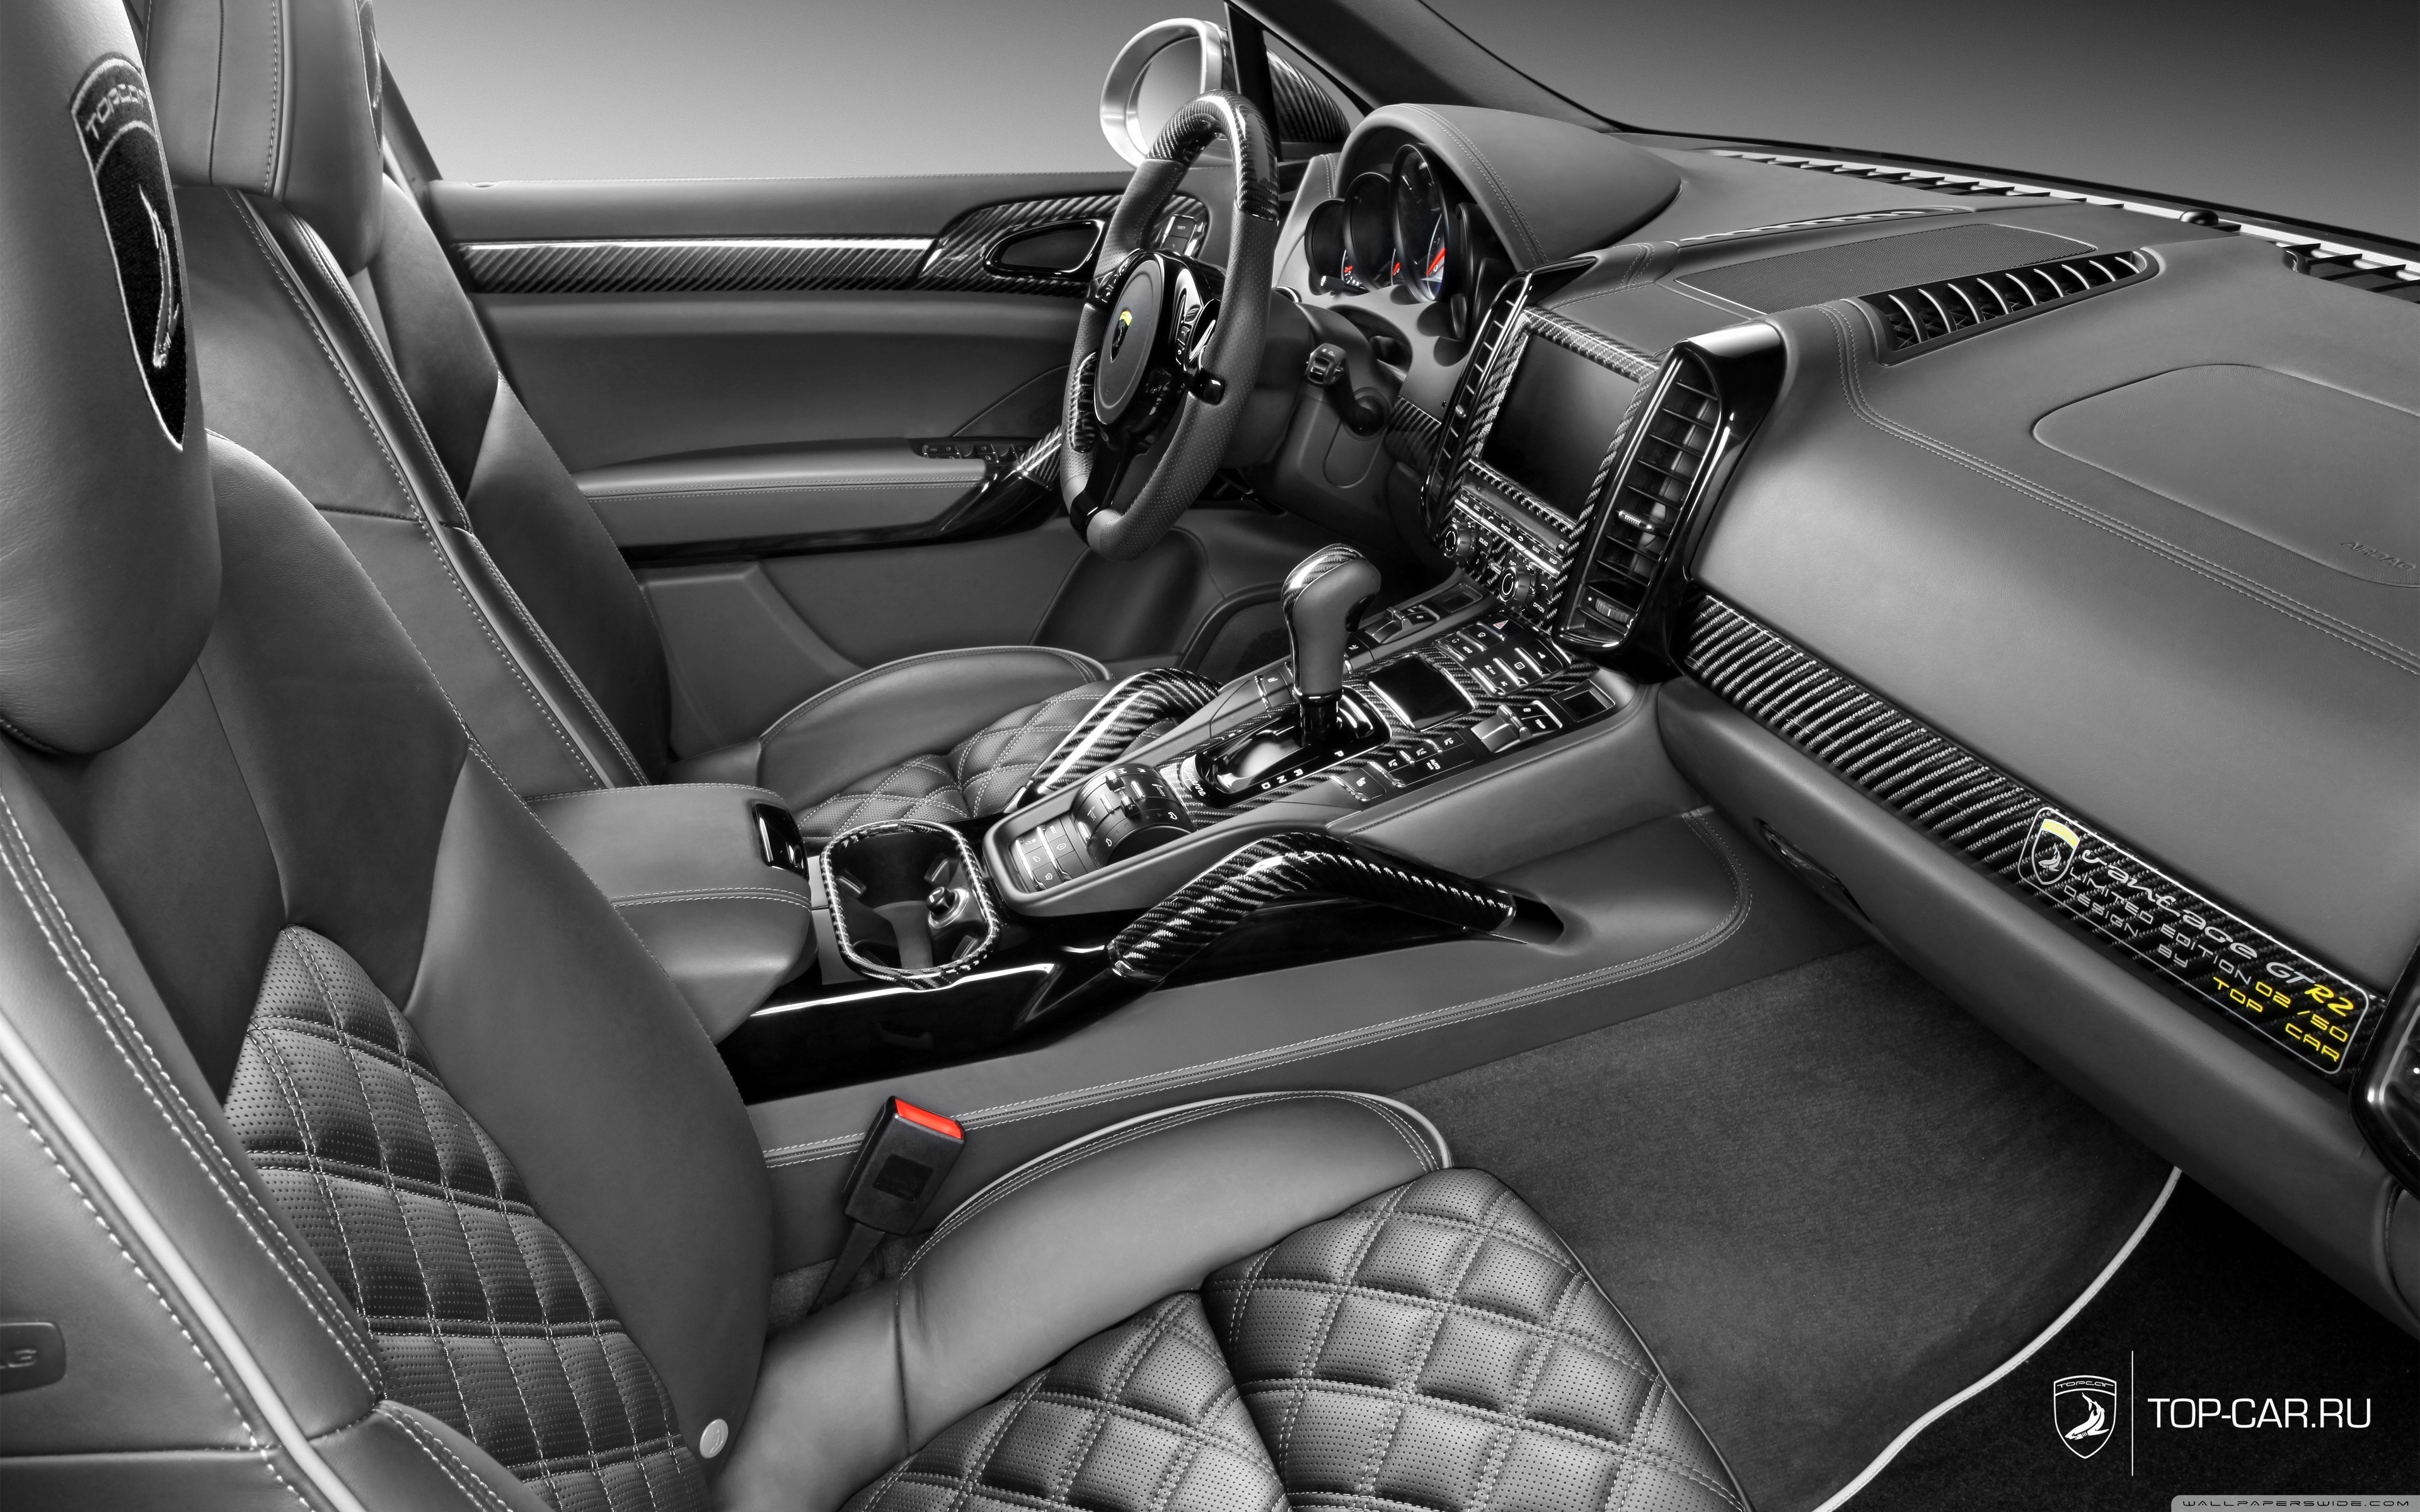 cars interior Vantage porsche HD Wallpaper